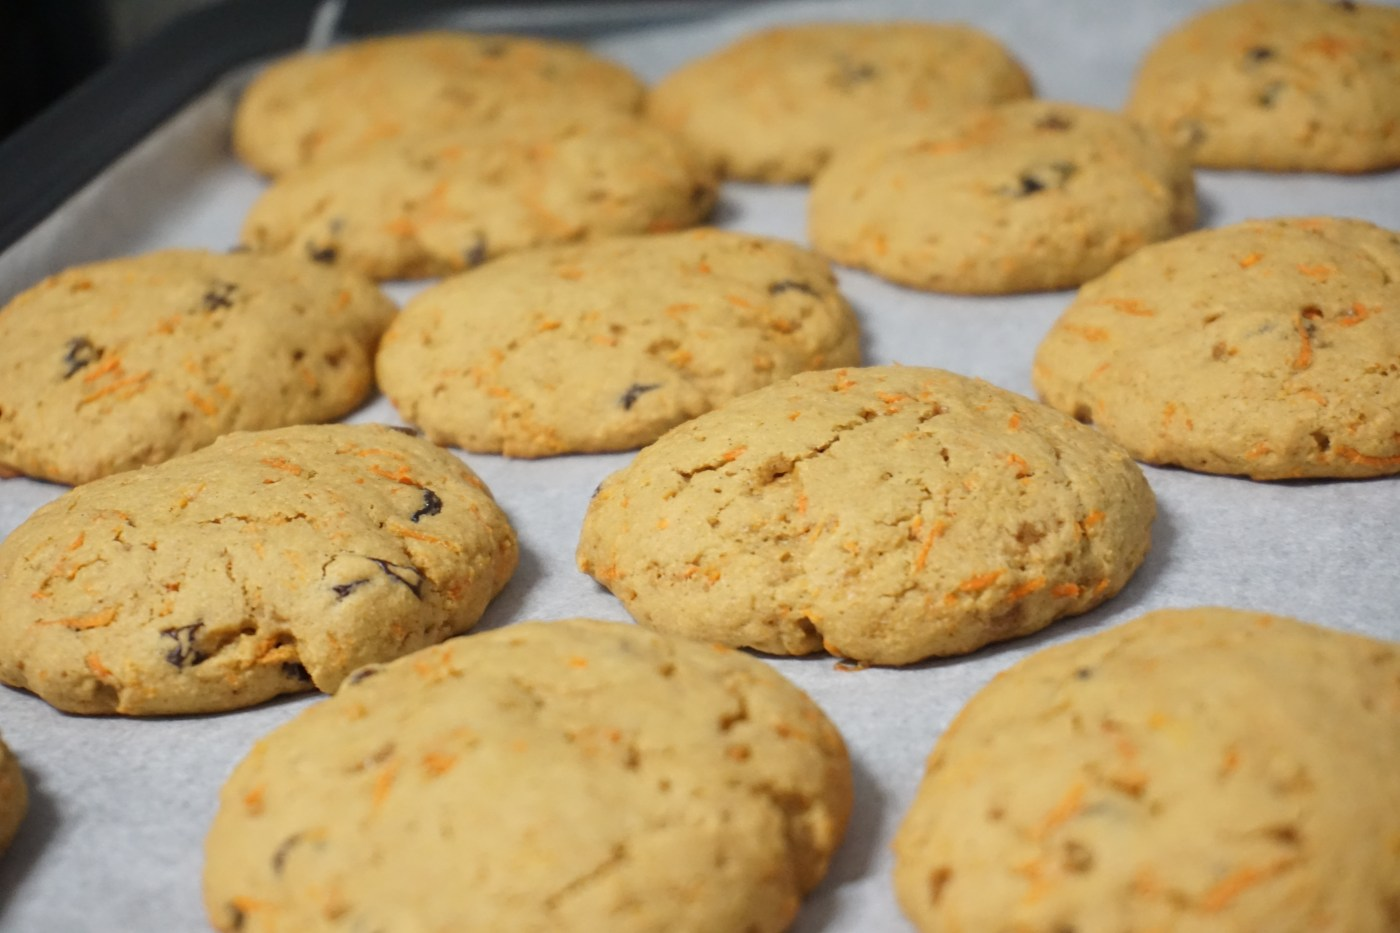 baked cookies on a parchment paper